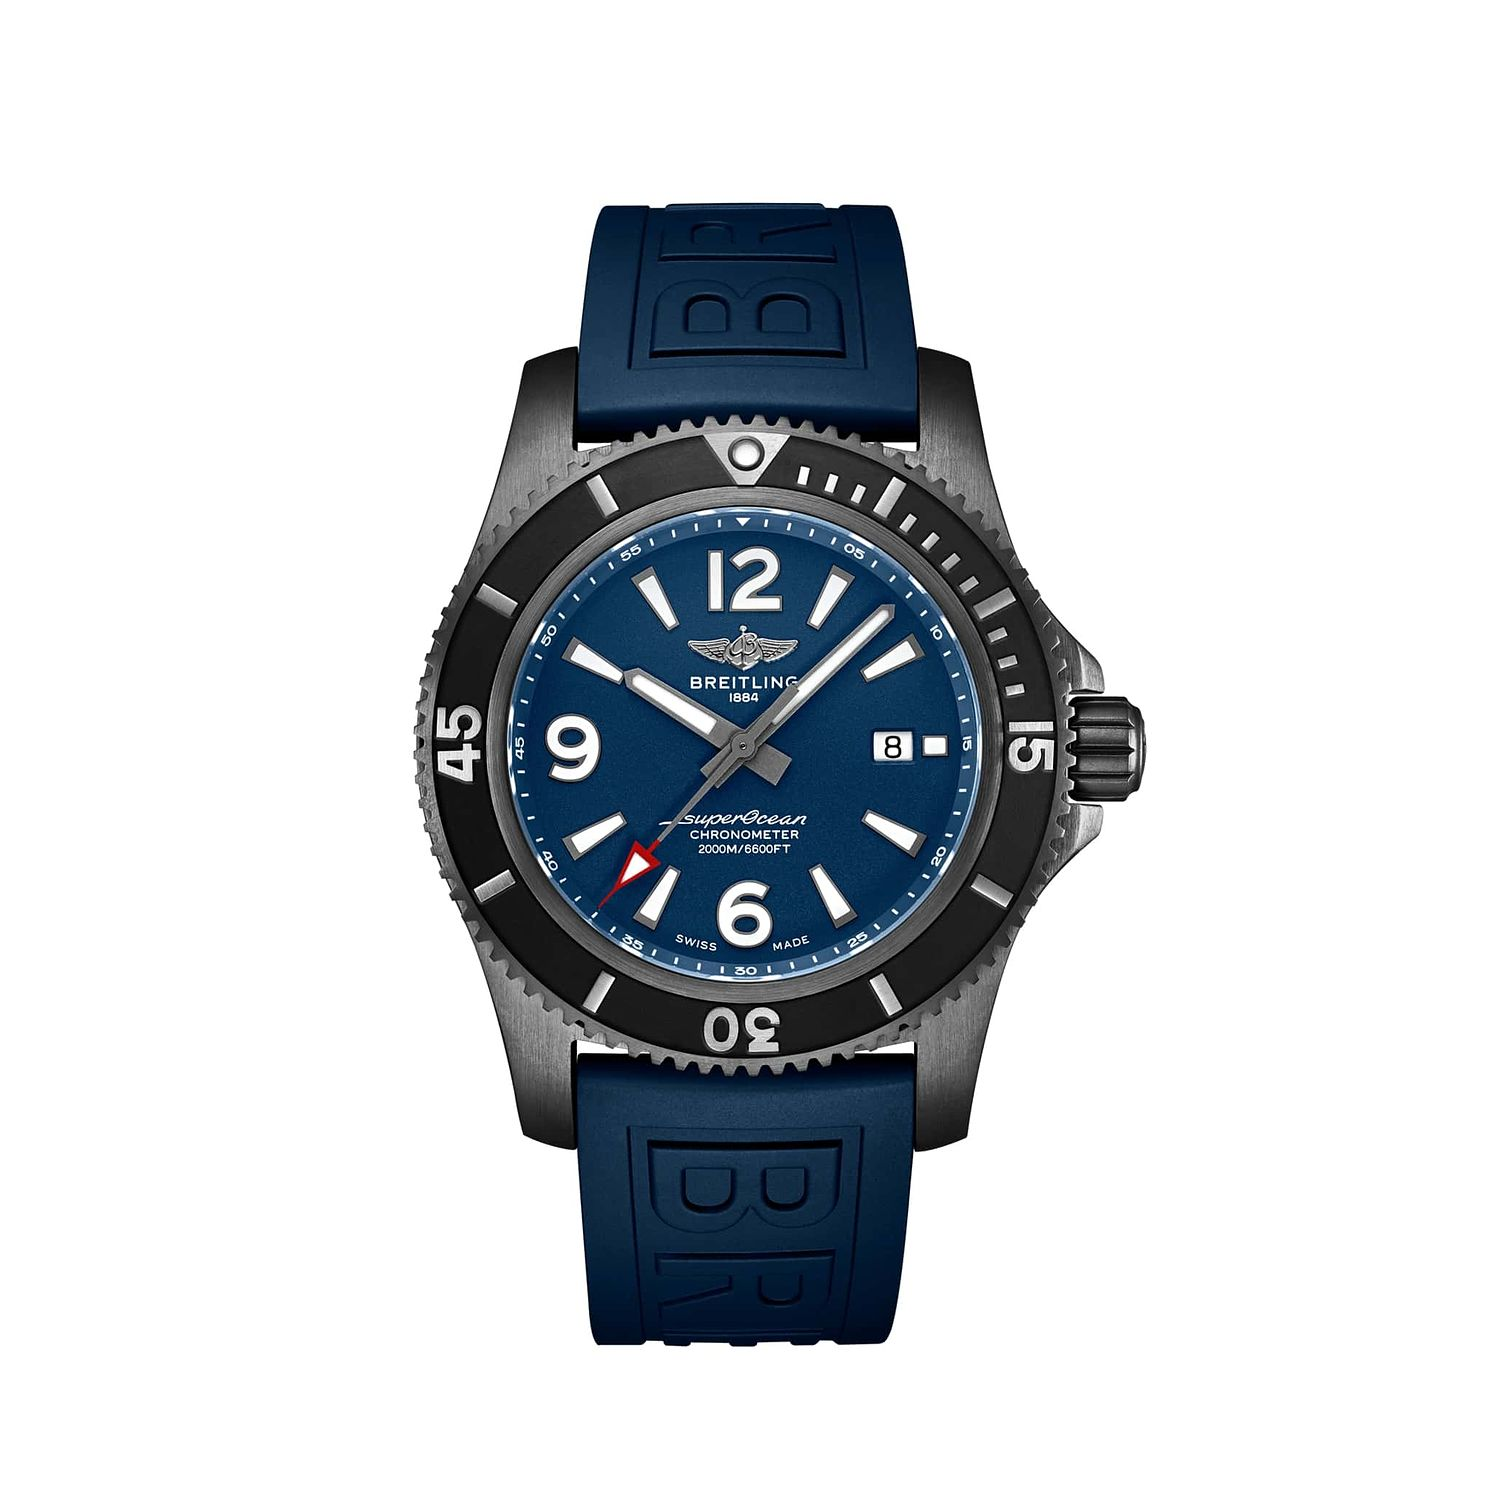 Breitling Superocean 46 Men's Blue Rubber Strap Watch - Product number 2466015